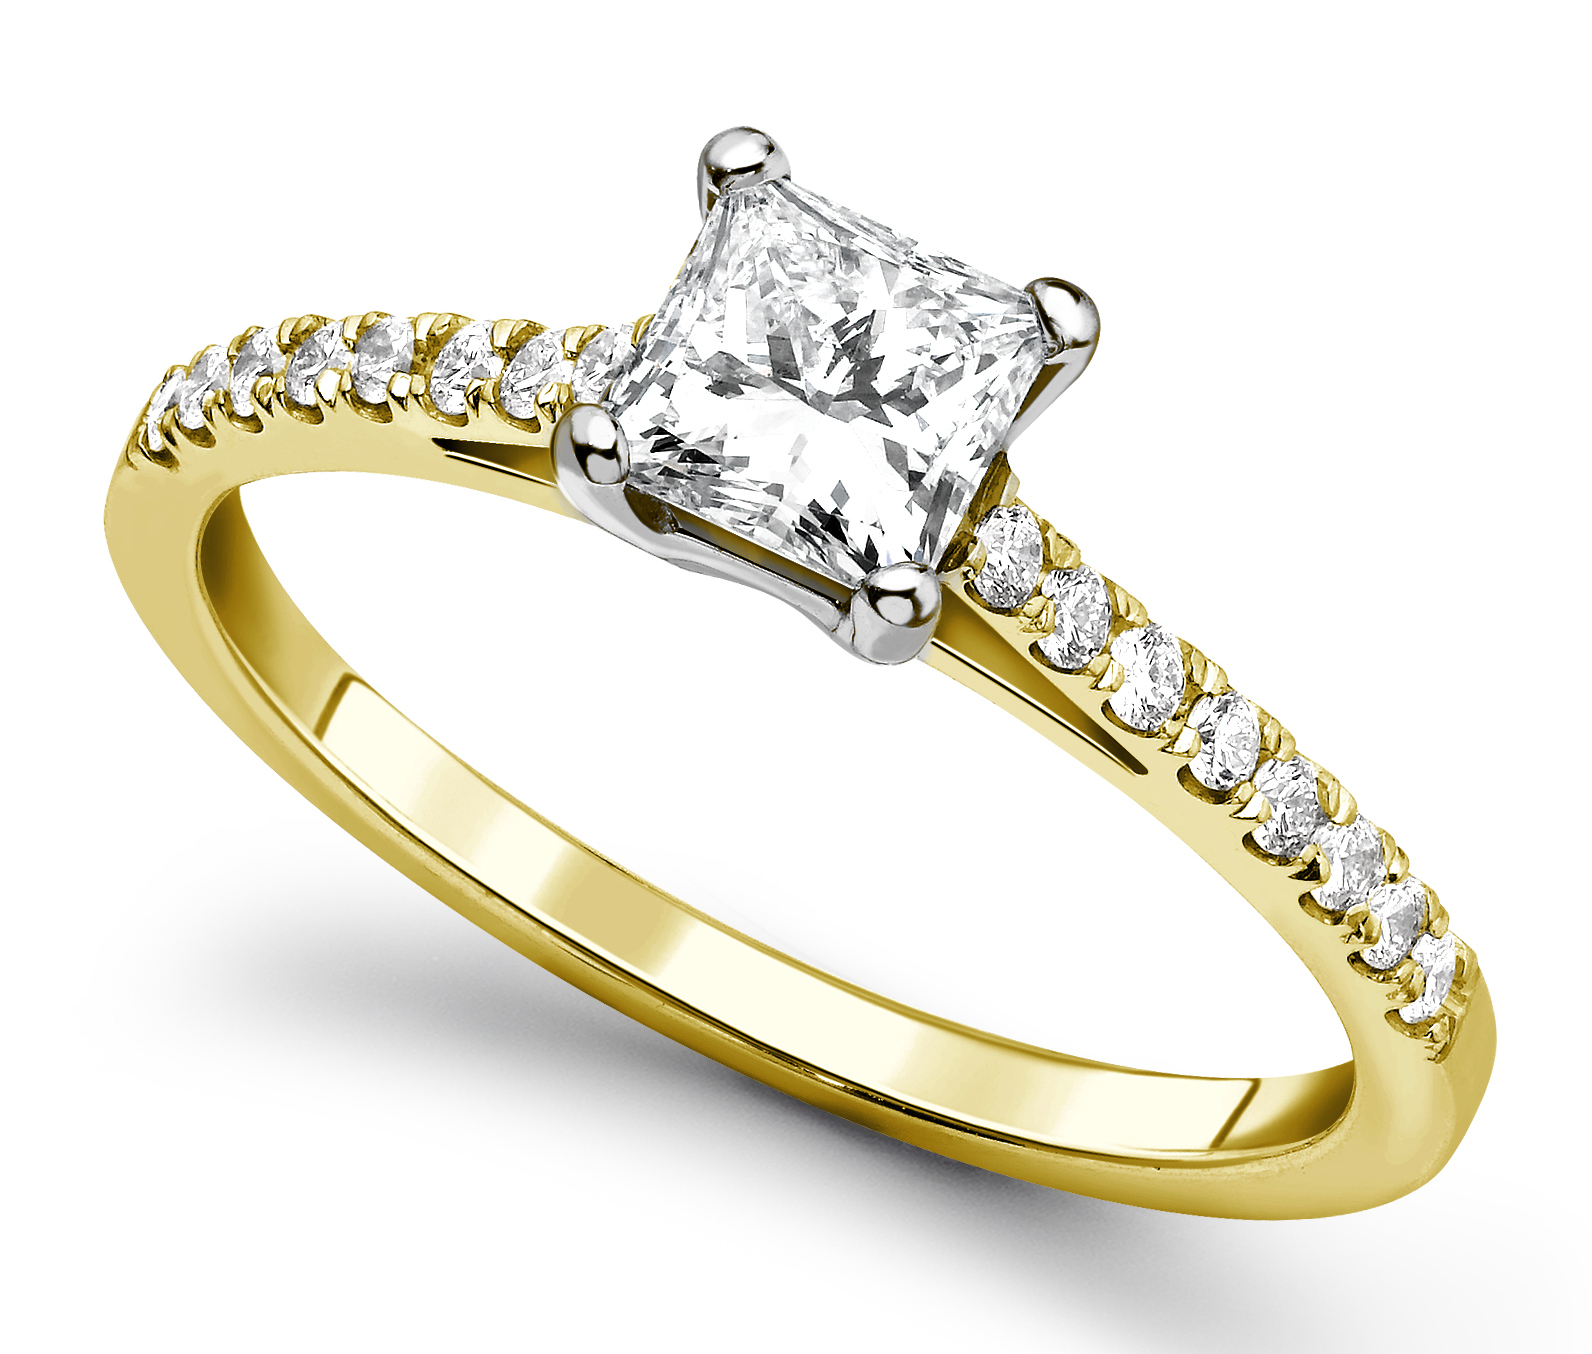 Princess Cut 4 Claw Yellow Gold Diamond Engagement Ring CRC685YG Main Image